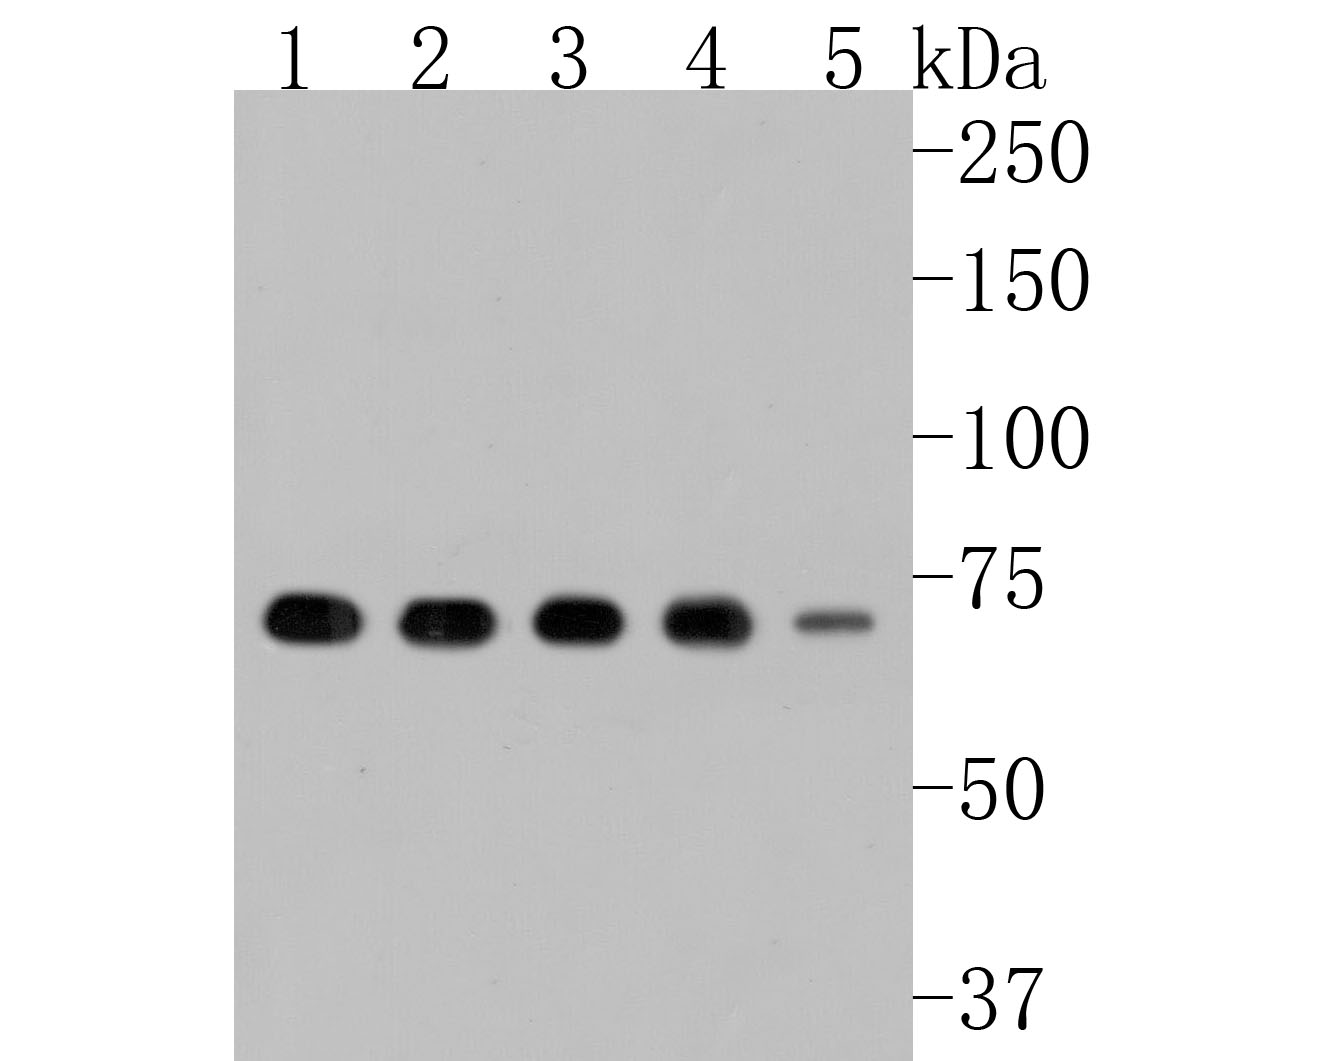 Western blot analysis of YY1 on different lysates. Proteins were transferred to a PVDF membrane and blocked with 5% BSA in PBS for 1 hour at room temperature. The primary antibody (ET1605-40, 1/500) was used in 5% BSA at room temperature for 2 hours. Goat Anti-Rabbit IgG - HRP Secondary Antibody (HA1001) at 1:5,000 dilution was used for 1 hour at room temperature.<br /> Positive control: <br /> Lane 1: Hela cell lysate<br /> Lane 2: Jurkat cell lysate<br /> Lane 3: HL-60 cell lysate<br /> Lane 4: Daudi cell lysate<br /> Lane 5: THP-1 cell lysate